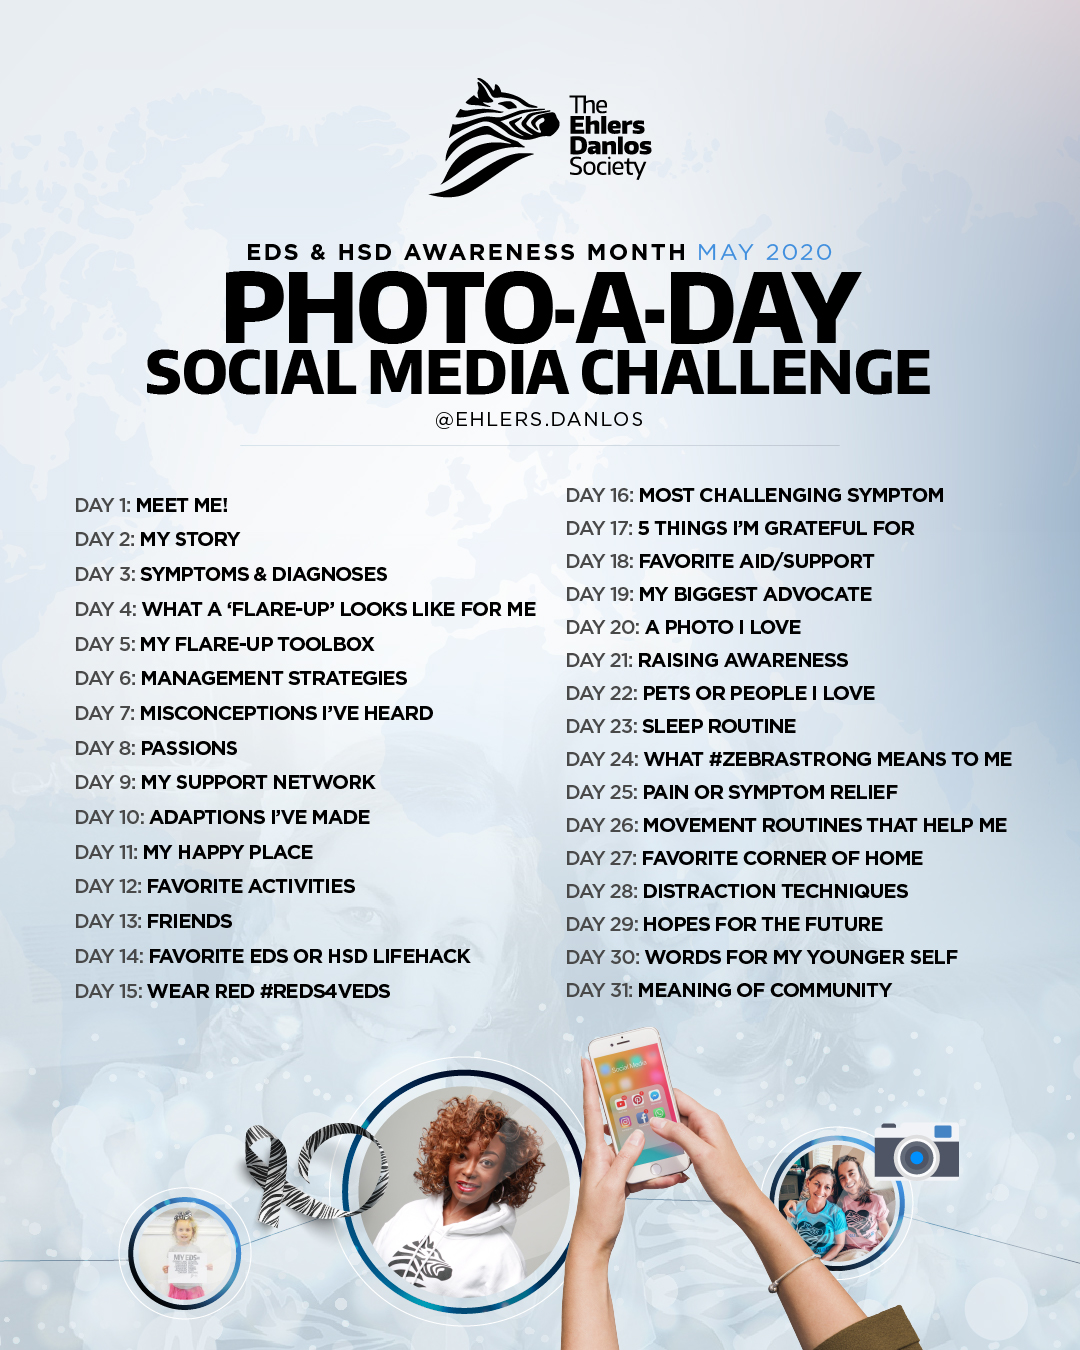 2020 May Awareness Photo A Day Challenge The Ehlers Danlos Society The Ehlers Danlos Society